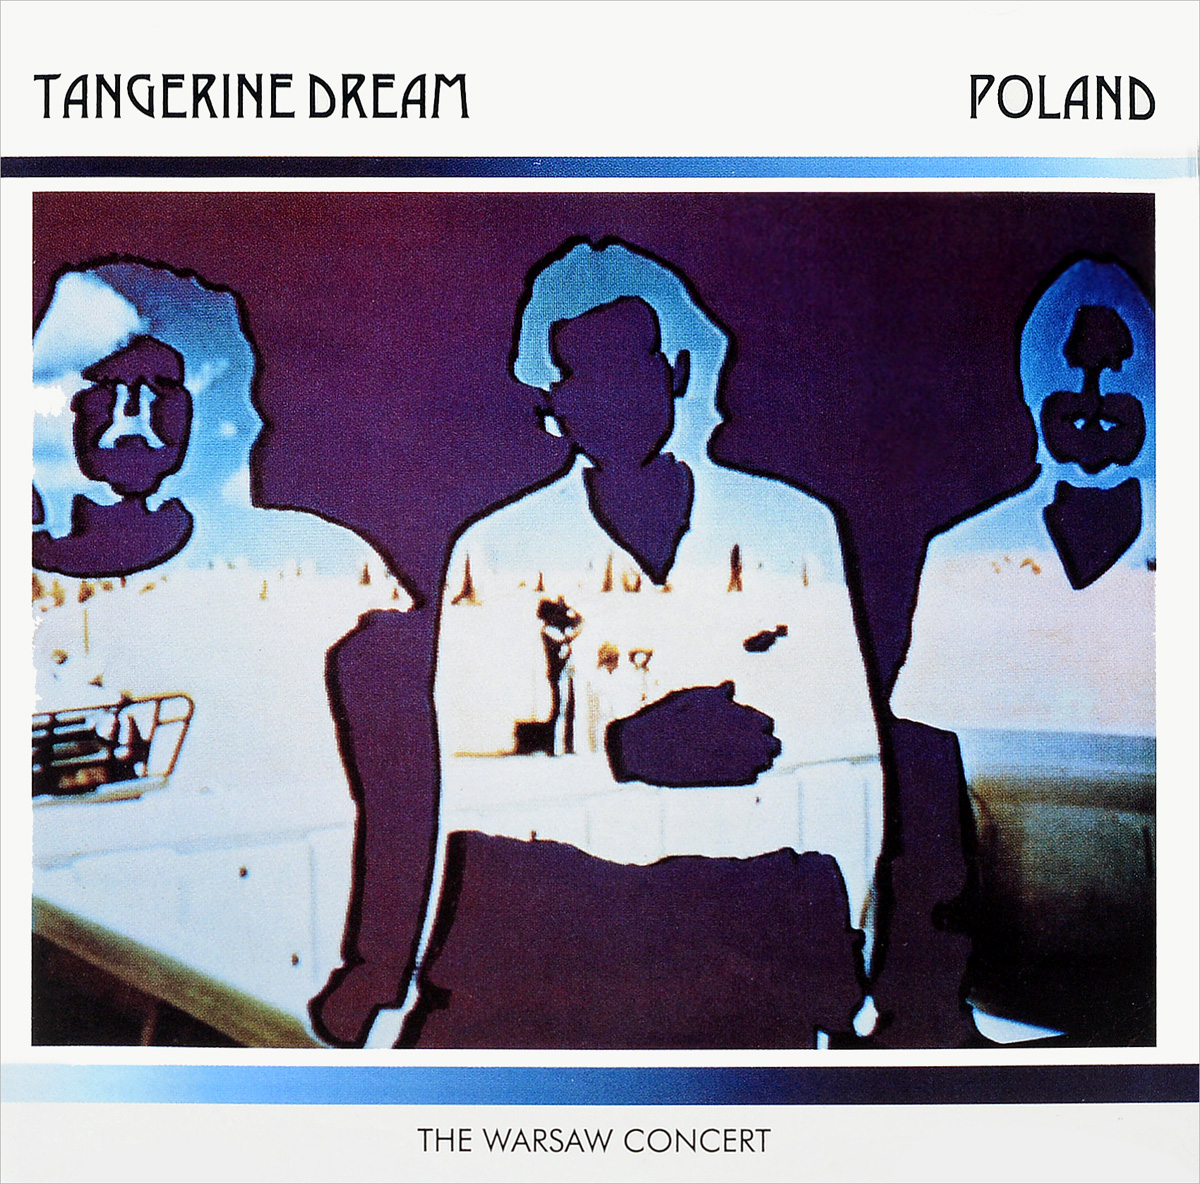 izmeritelplus.ru Tangerine Dream. Poland - The Warsaw Concert (2 CD)